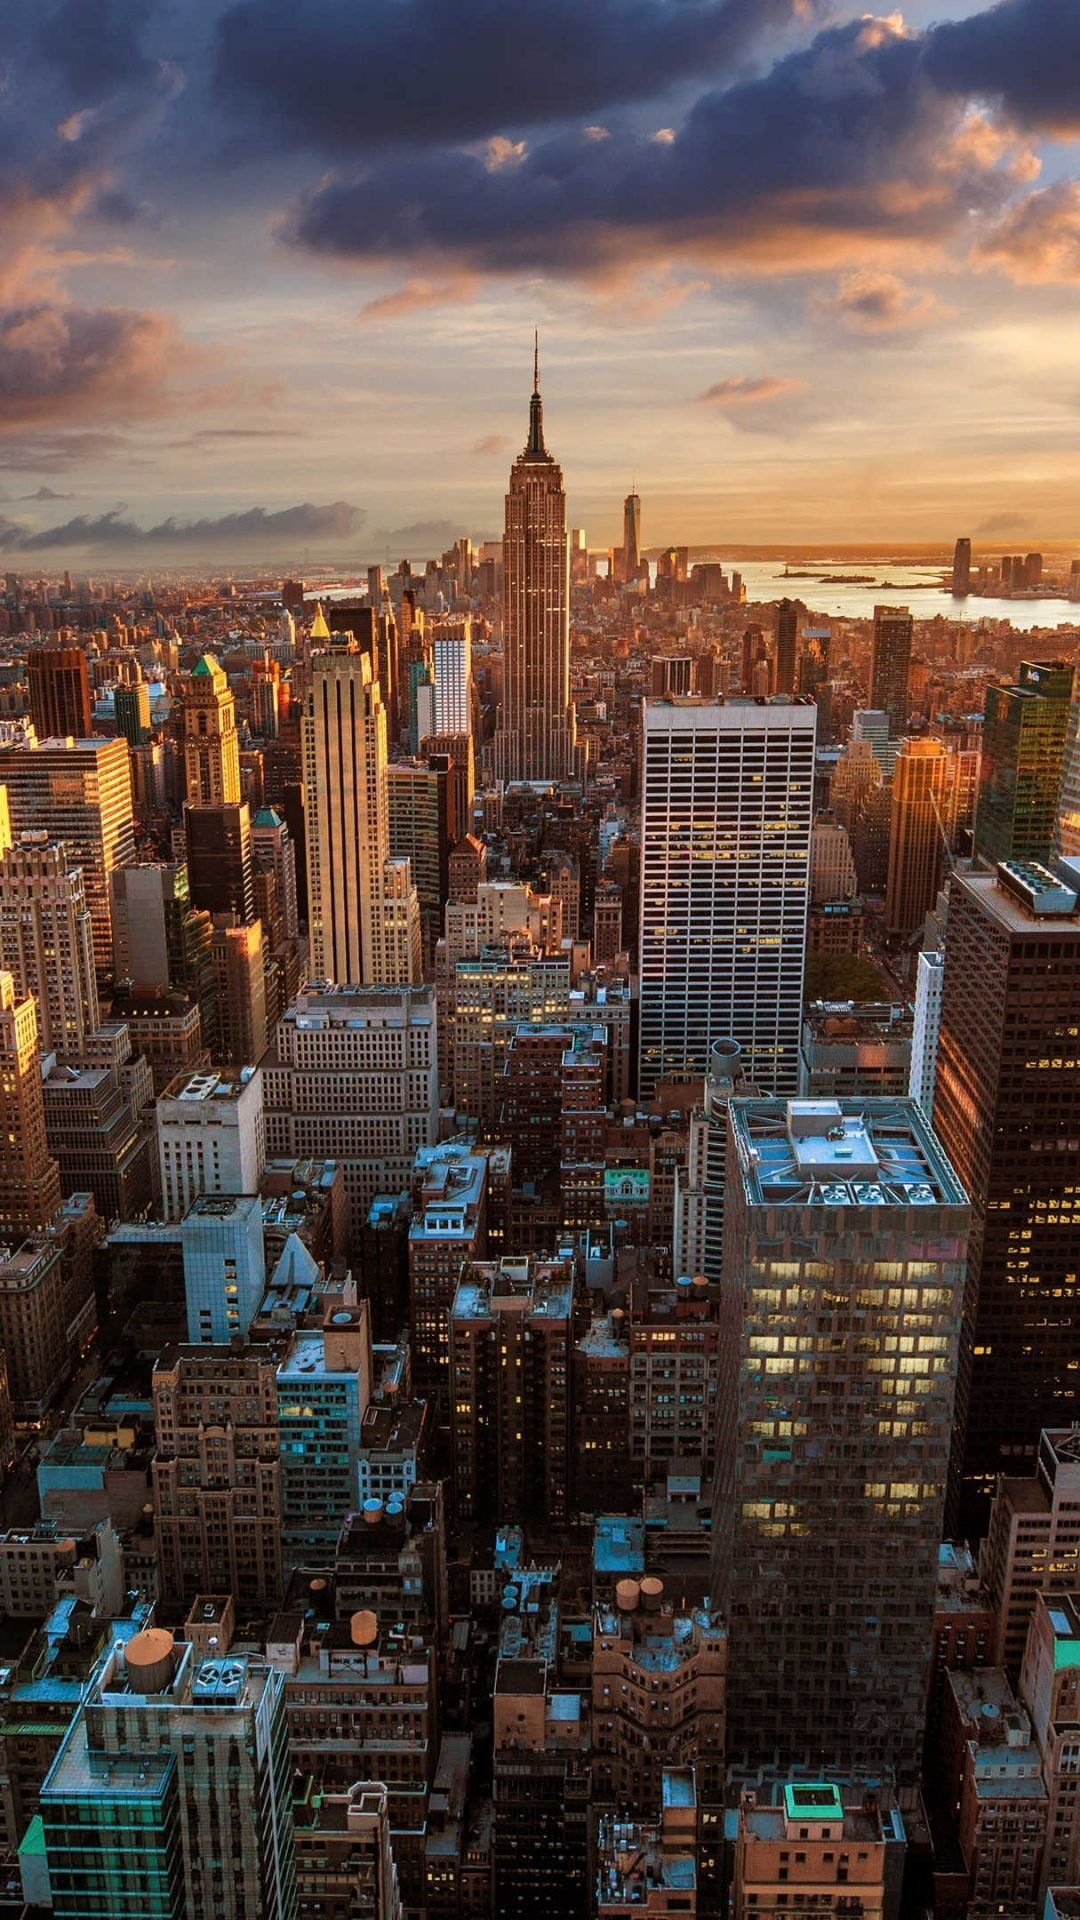 New York Wallpaper Home Screen On High Quality Wallpaper On Snowman Wallpapers Com Iphone Android Wallpape In 2020 New York Wallpaper City Wallpaper City Aesthetic